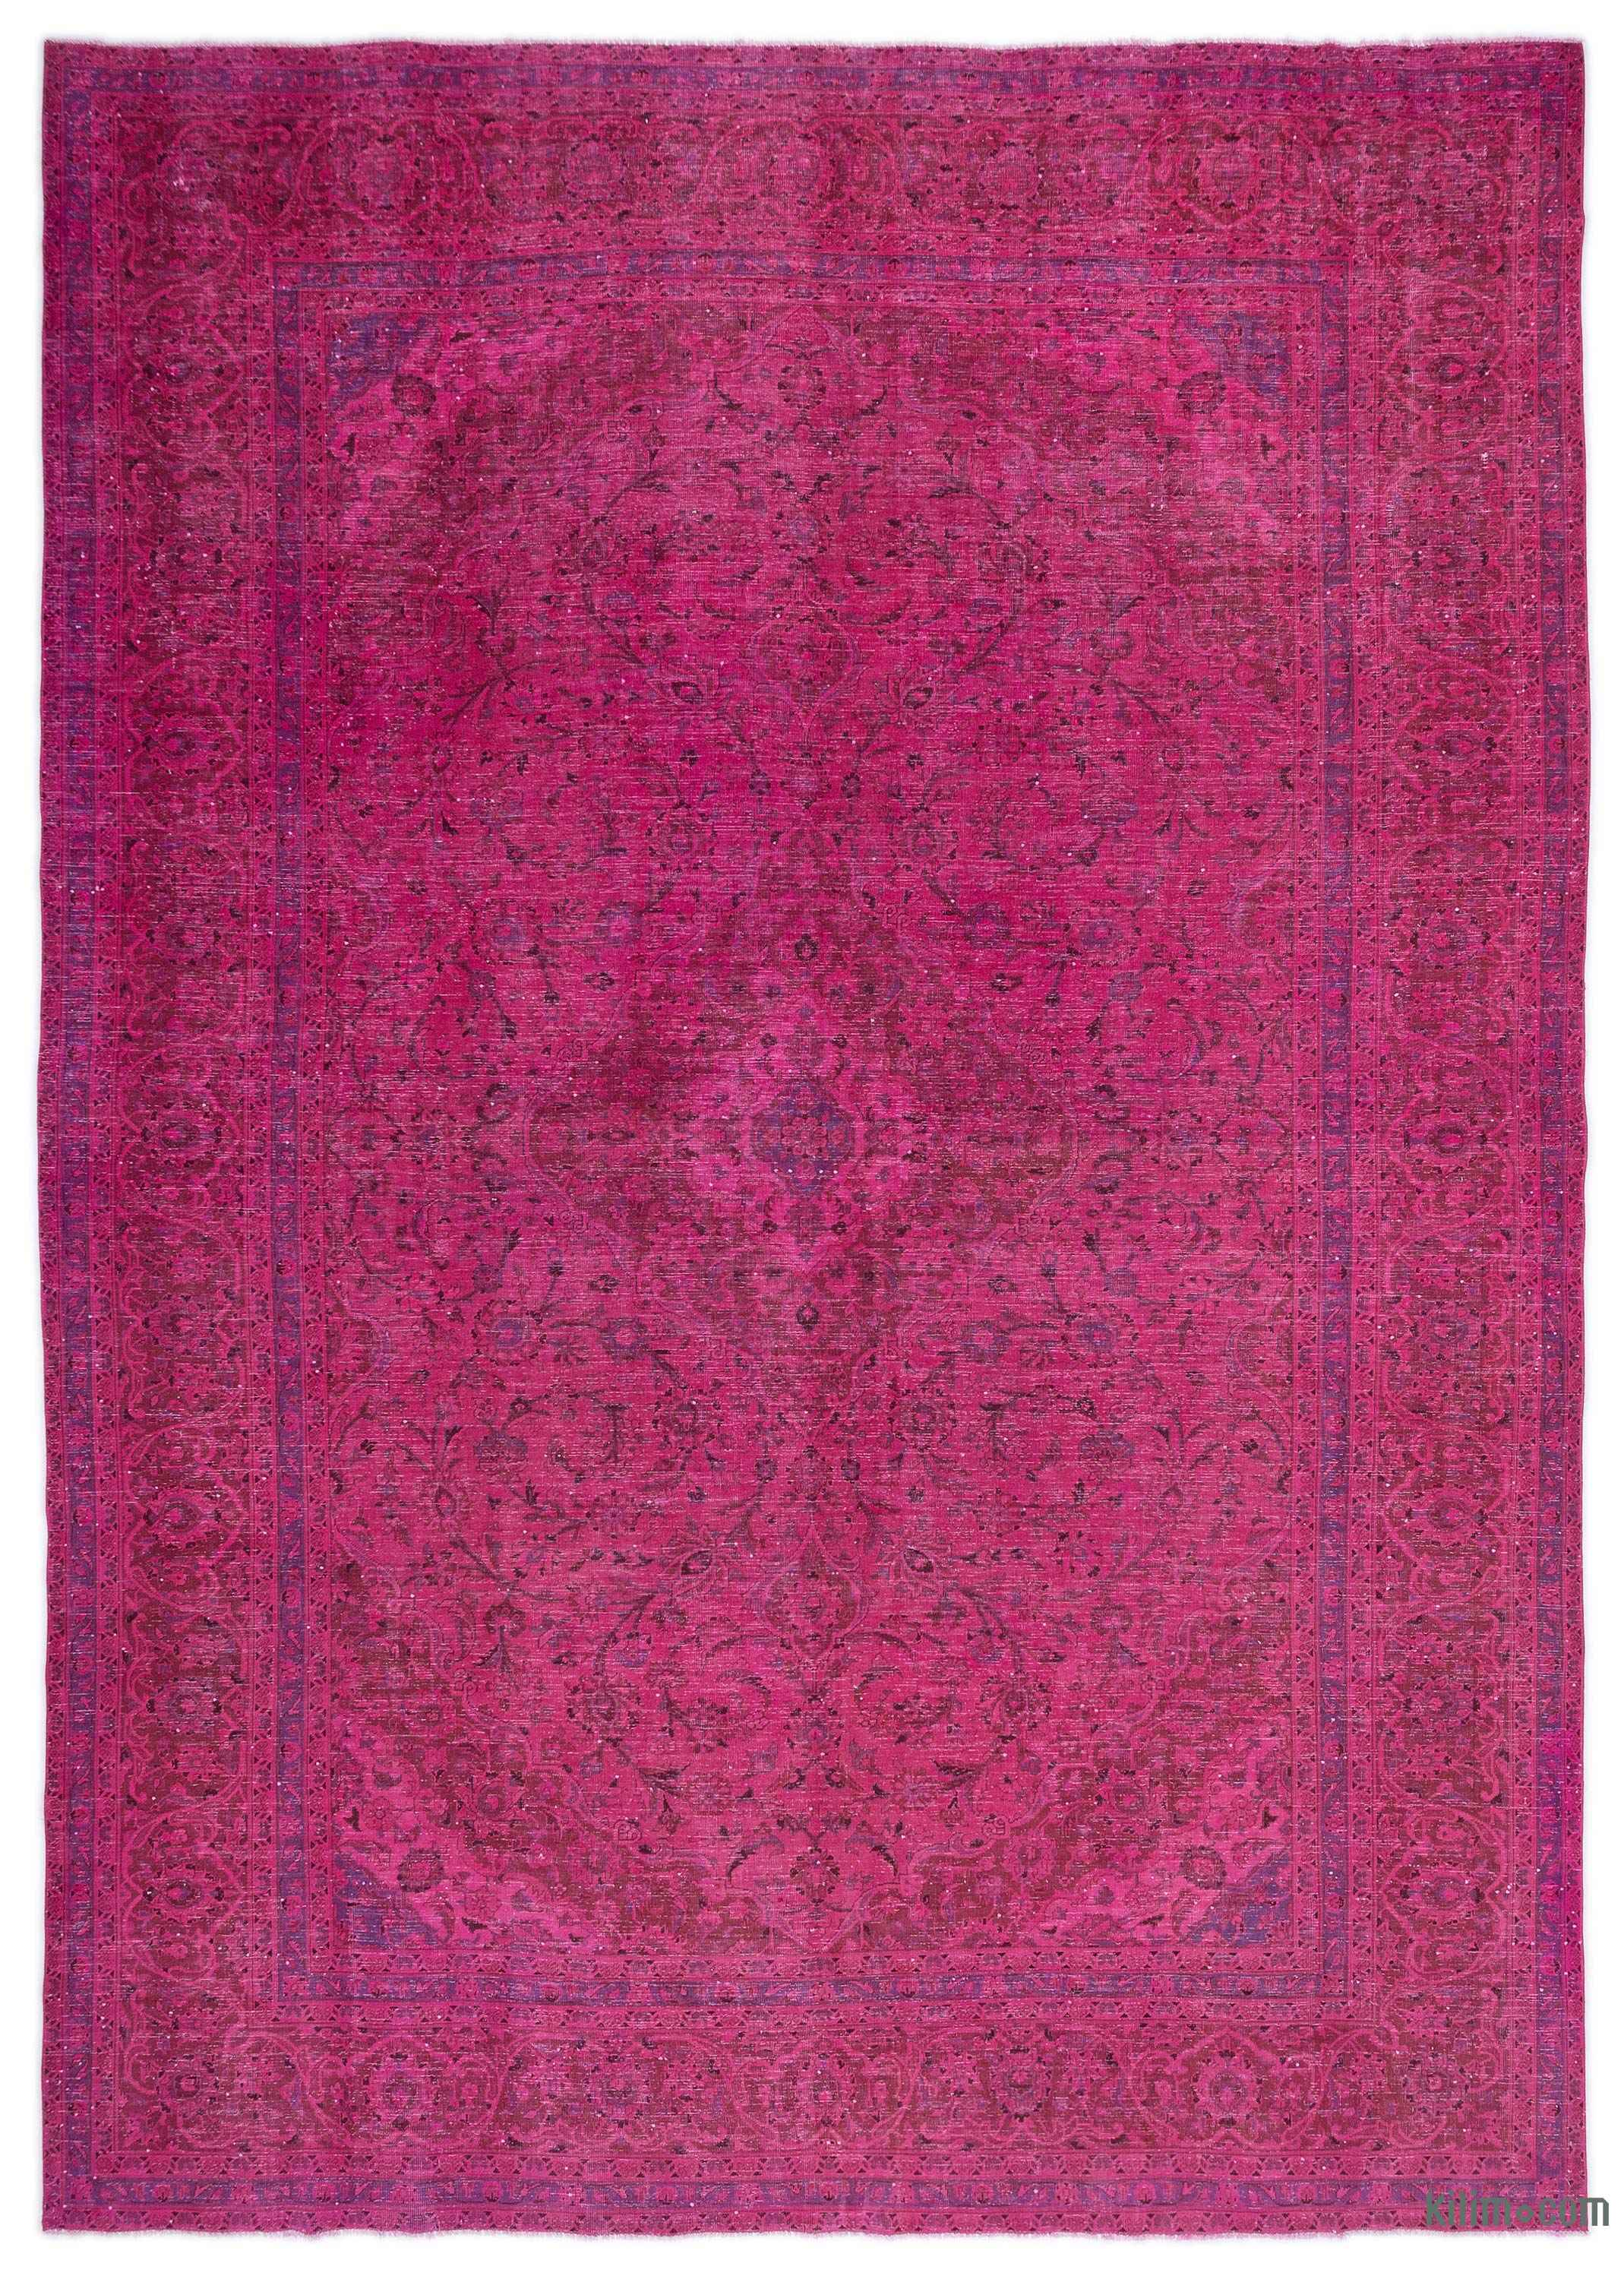 Pink Over Dyed Vintage Rug 9 3 X 13 1 111 In 157